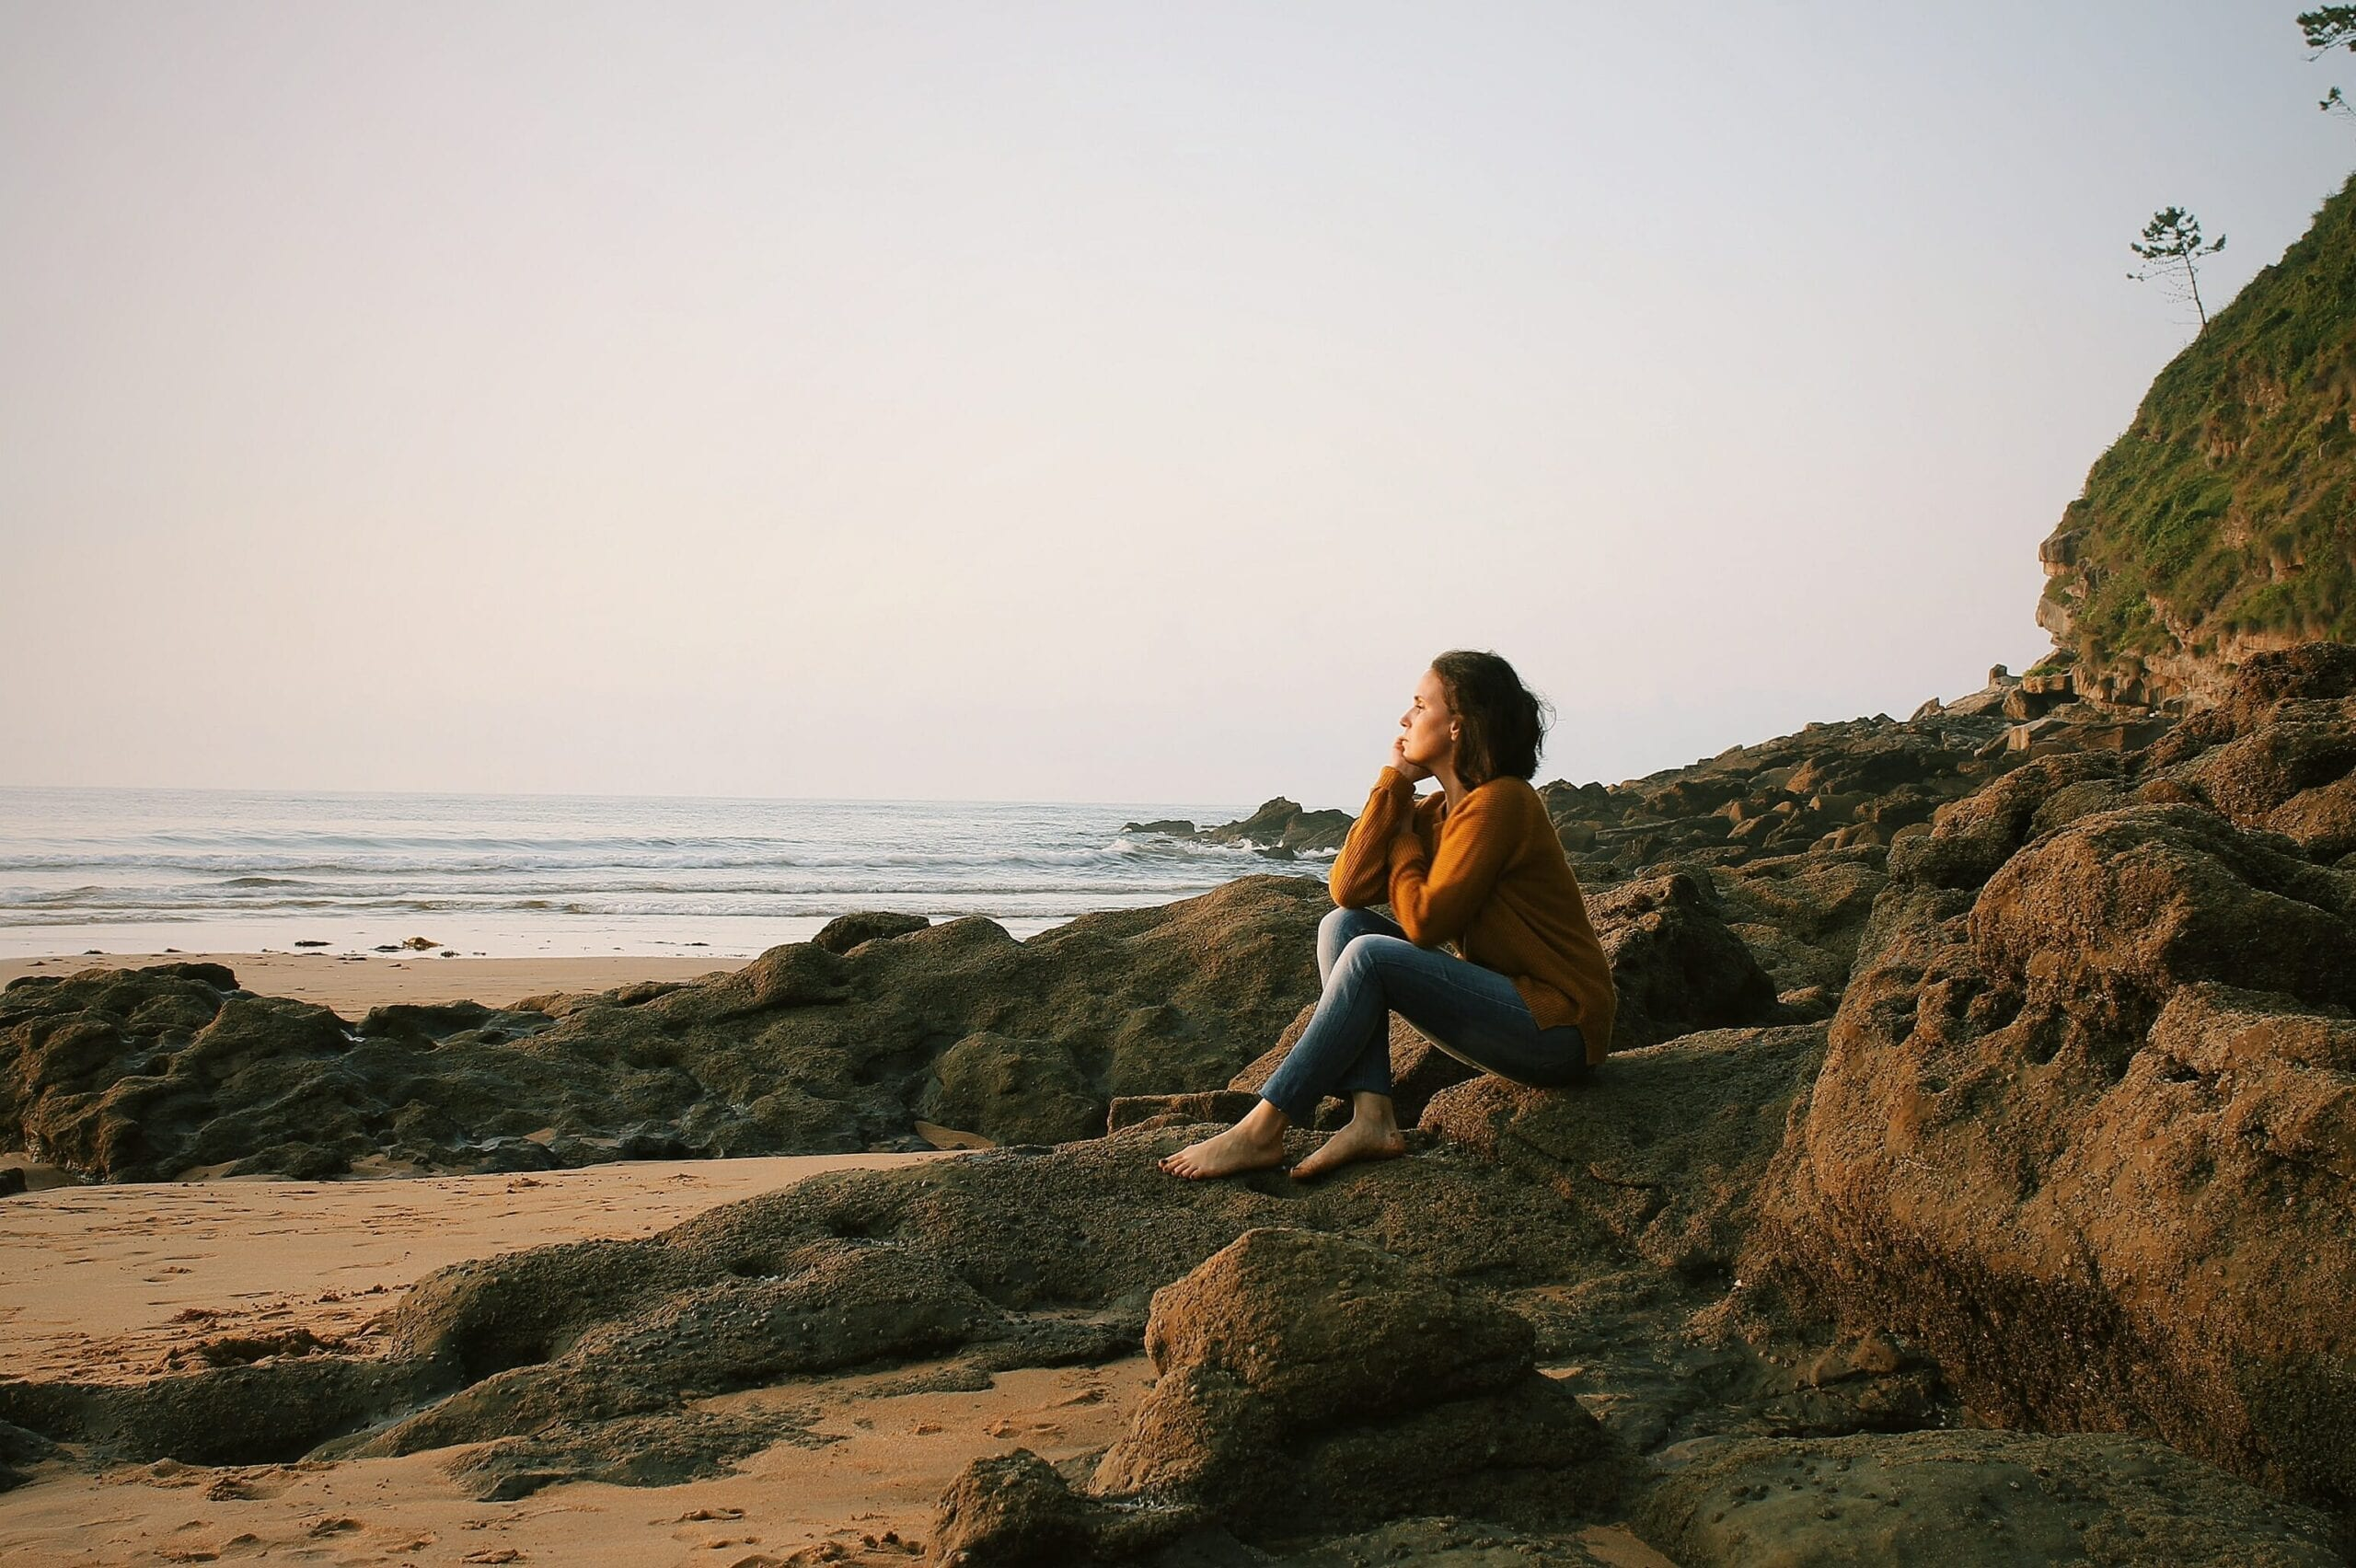 Mindfulness, getting your mind right